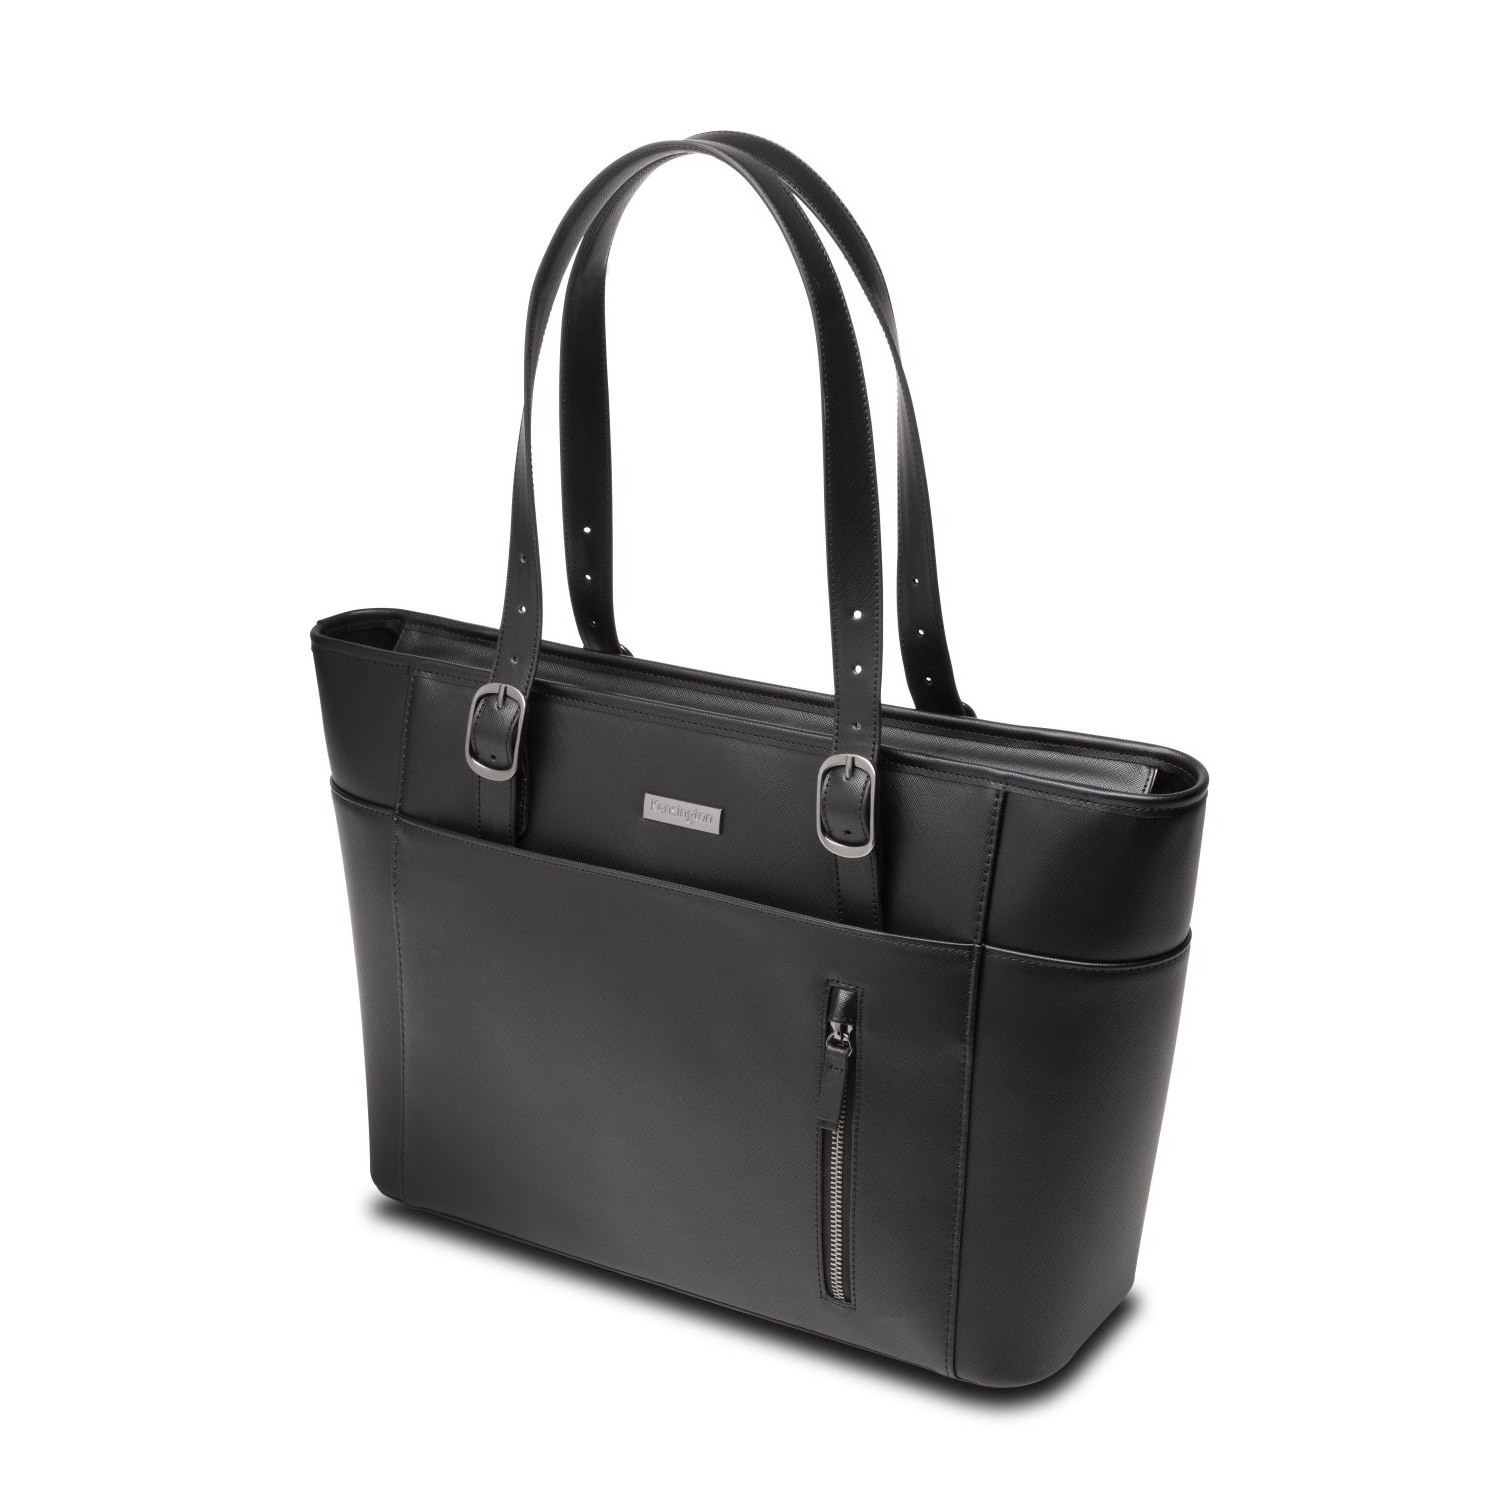 "968f8581f088 Kensington LM670 15.6"" Laptop Tote (62850)"